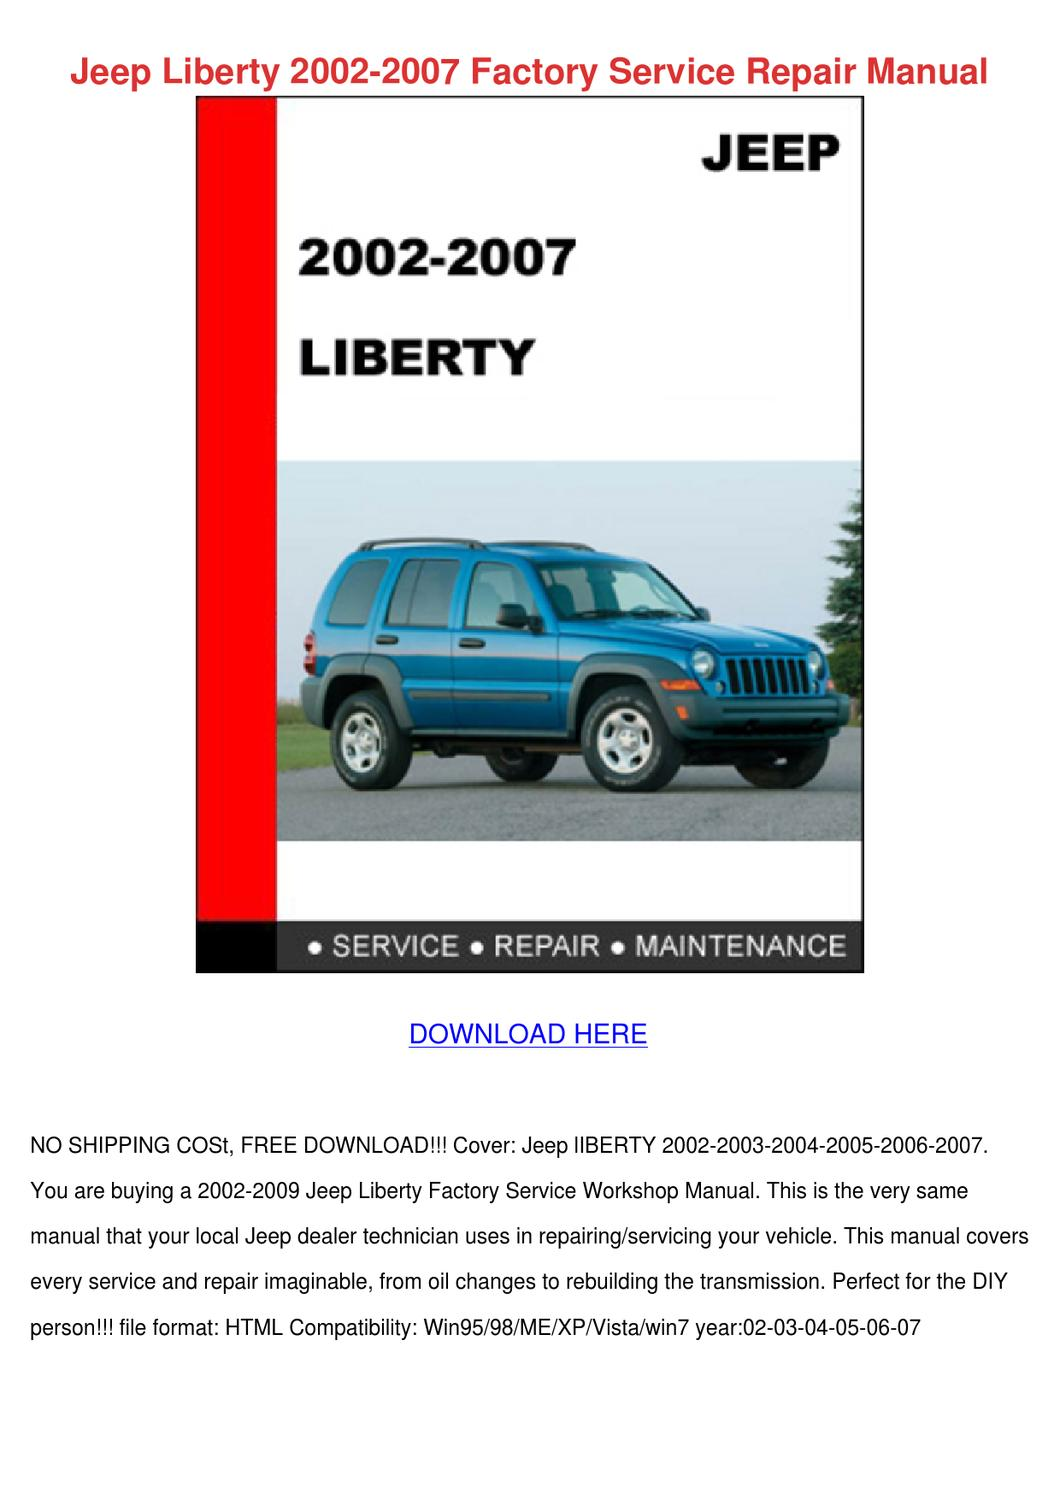 jeep liberty 2002 2007 factory service repair by keturah